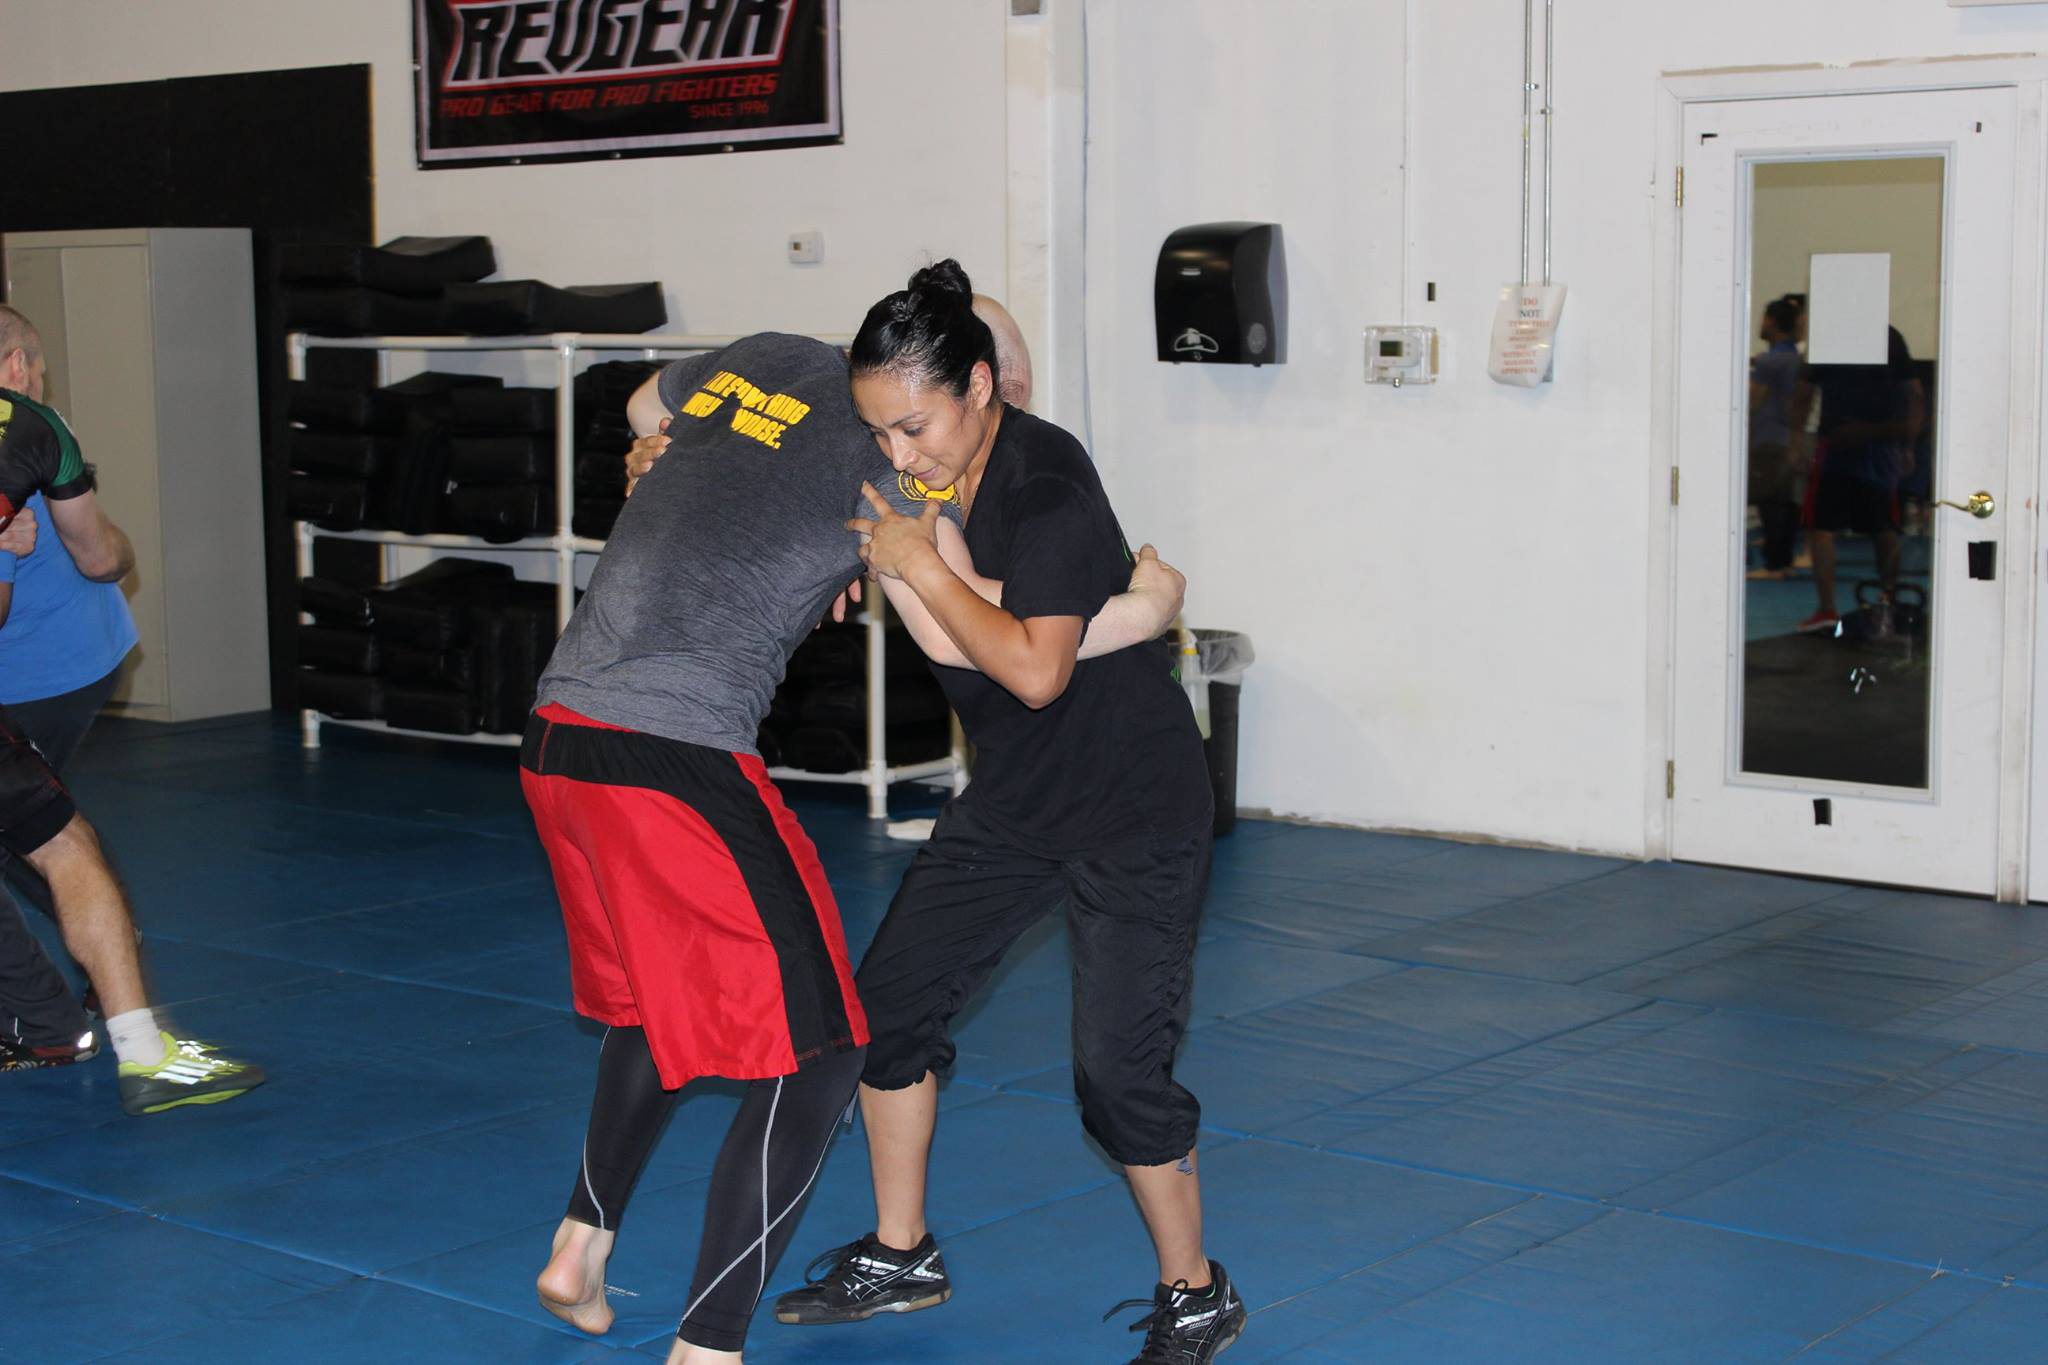 Self defense training at Krav Maga